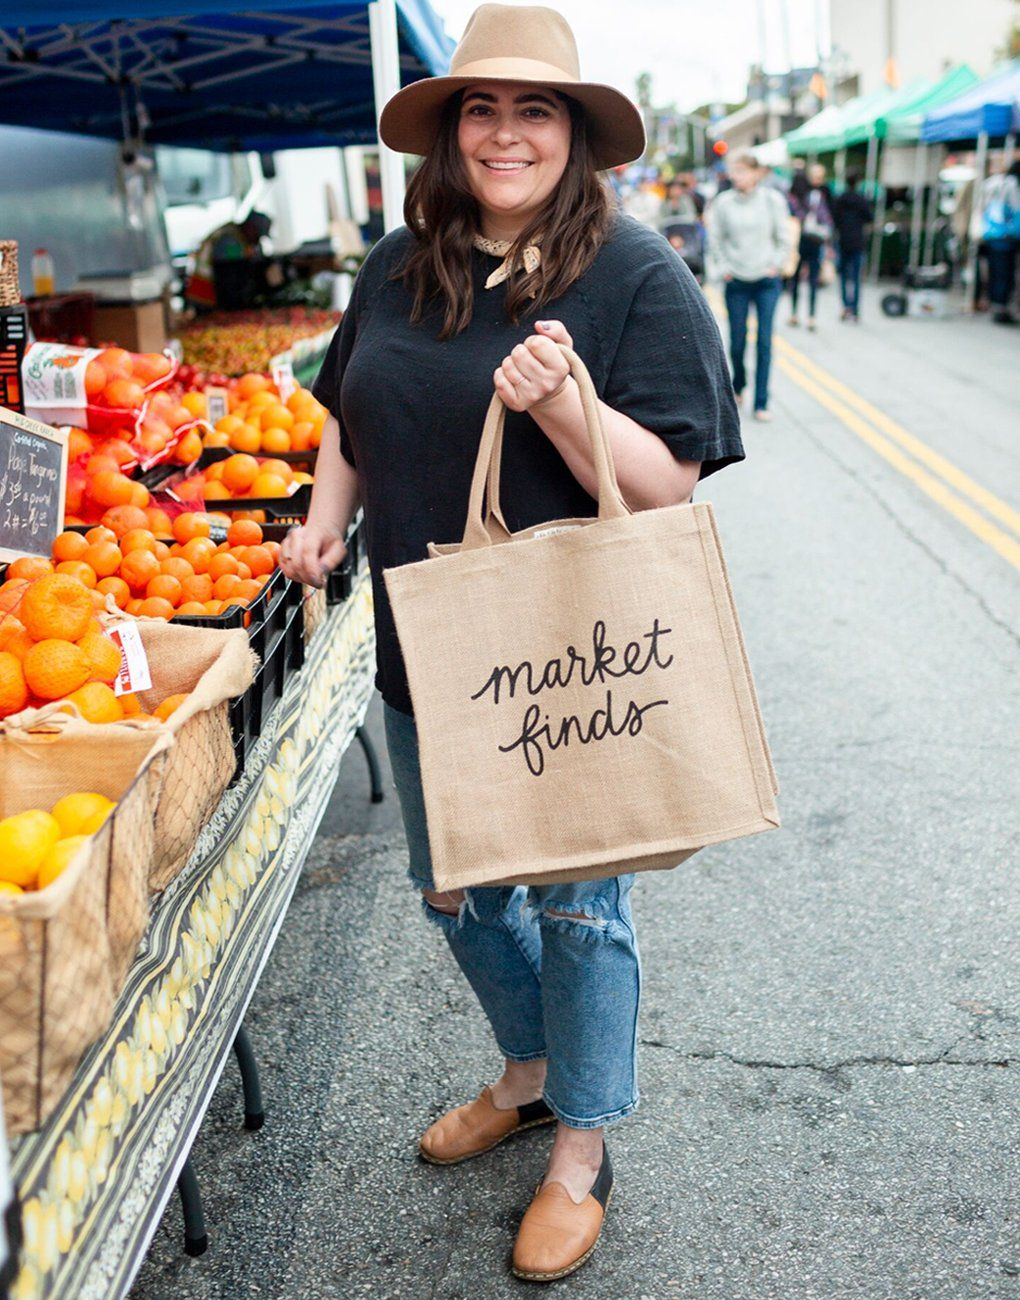 Shop Local Freshly Picked Produce Farmers Market Shopping Fruit Canvas Tote Bag Vegetable